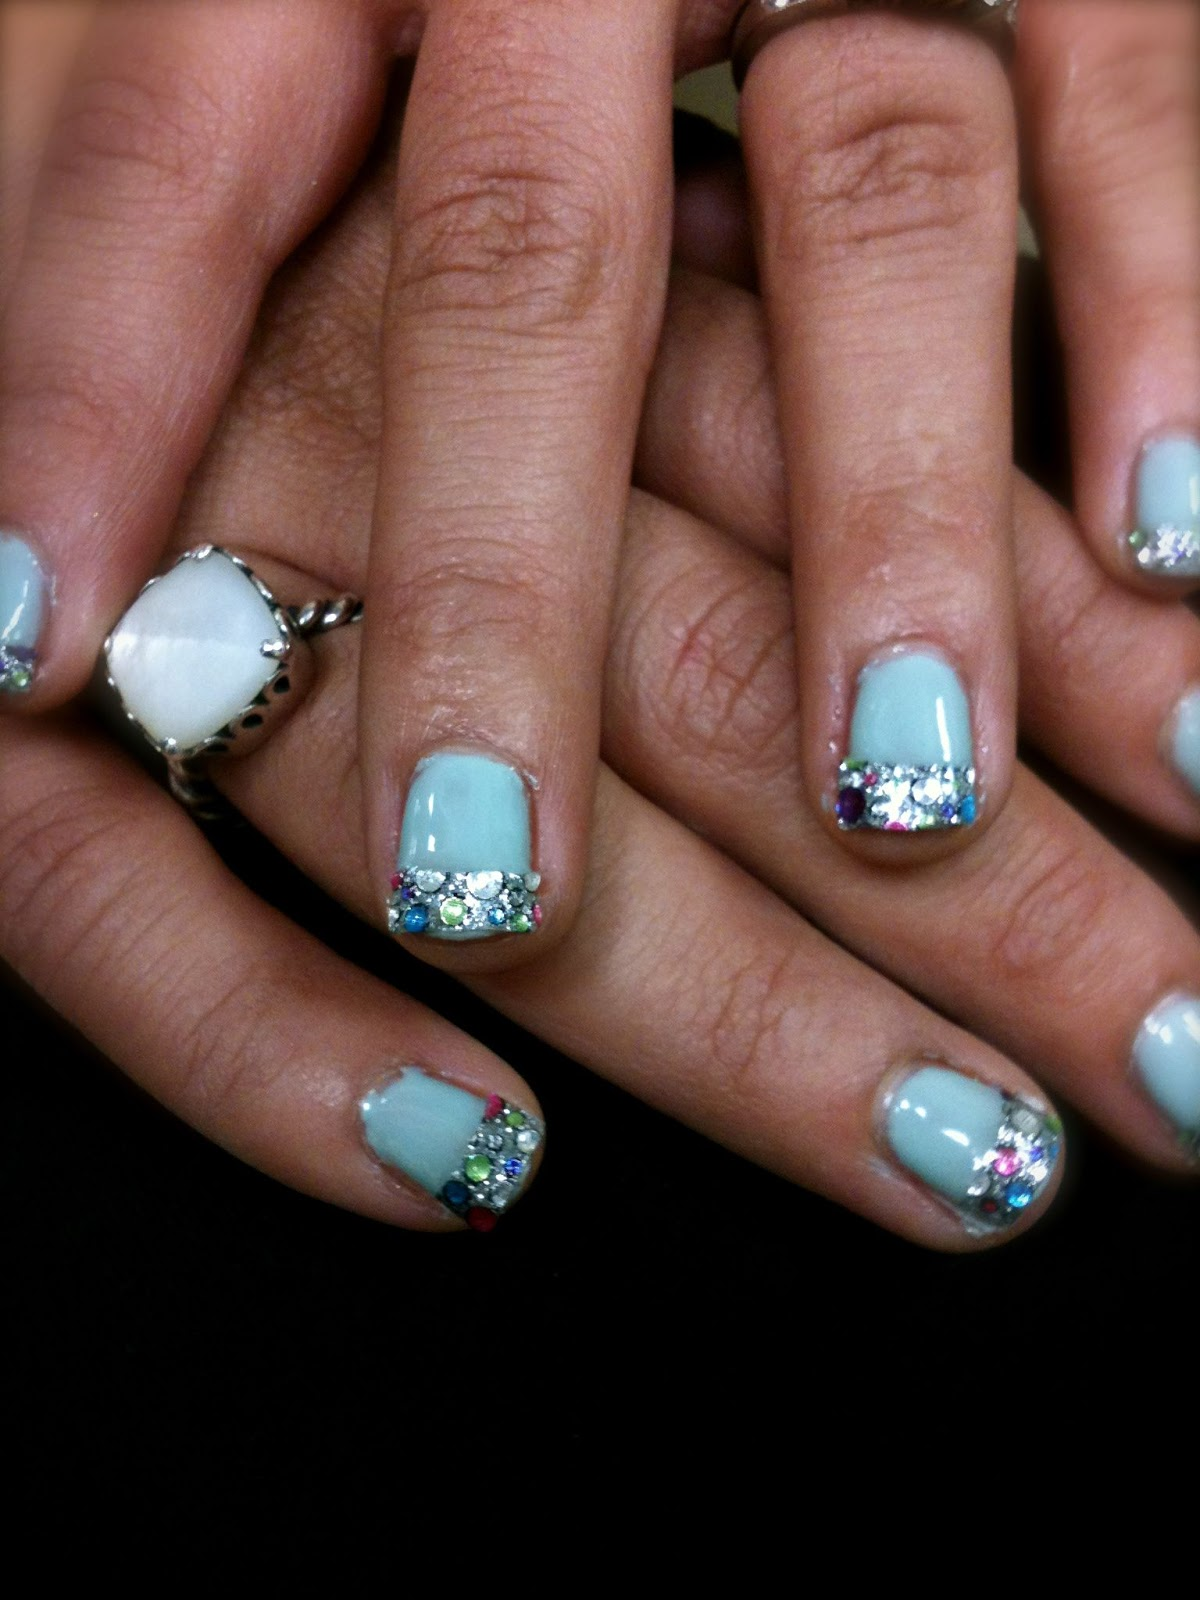 How to get super cute gel polish nails with glittery tip! | The Glamizon